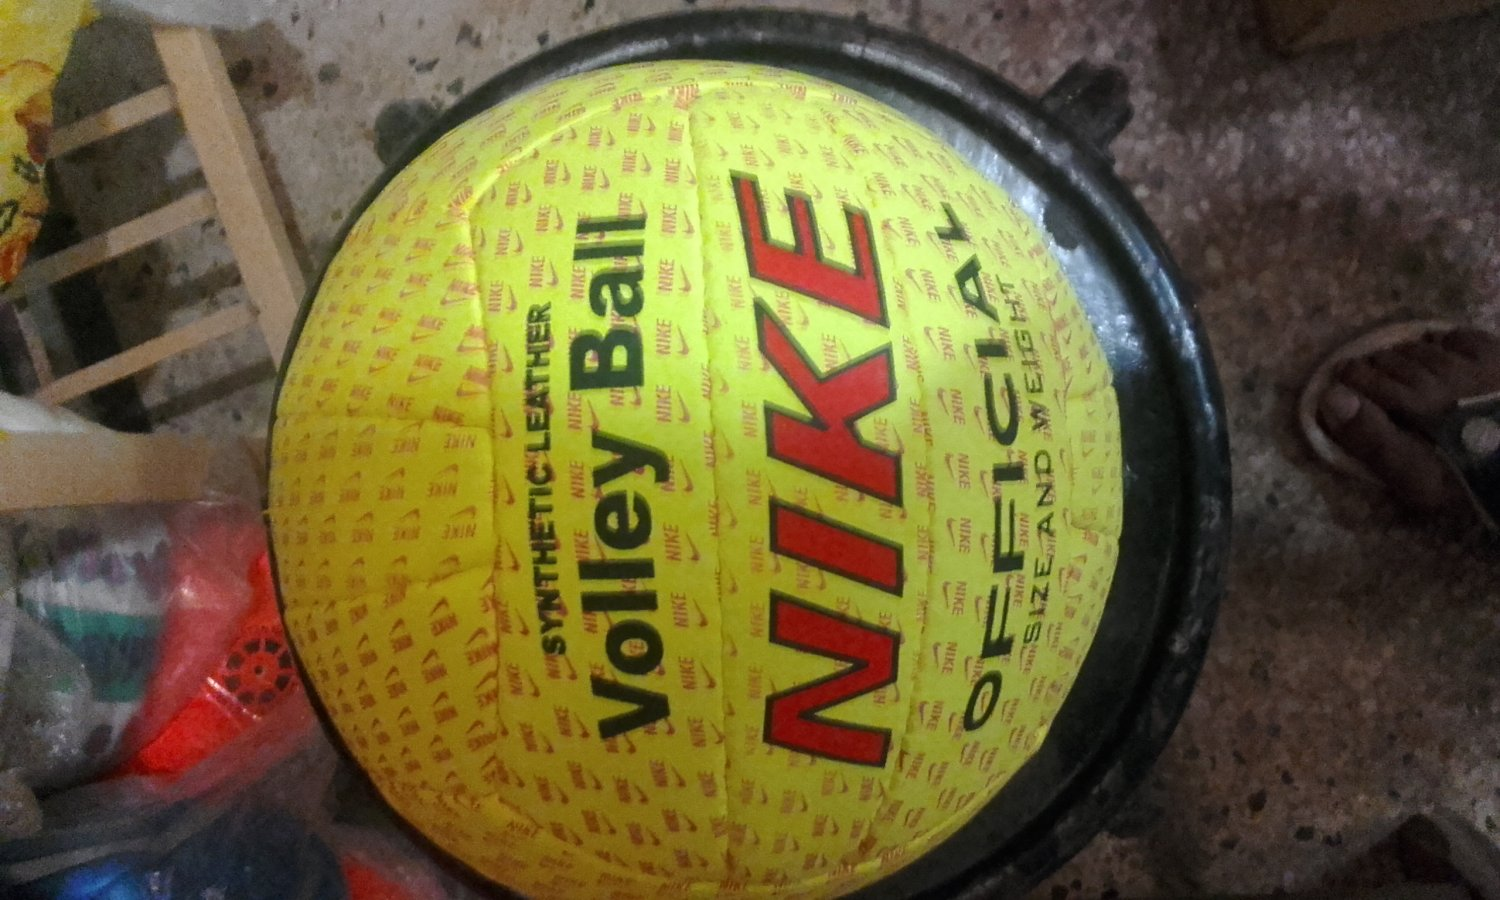 NIKE SYNTHETIC LEATHER BEACH VOLLEY BALL REPLICA OFFICIAL SIZE AND WEIGHT YELLOW COLOURE